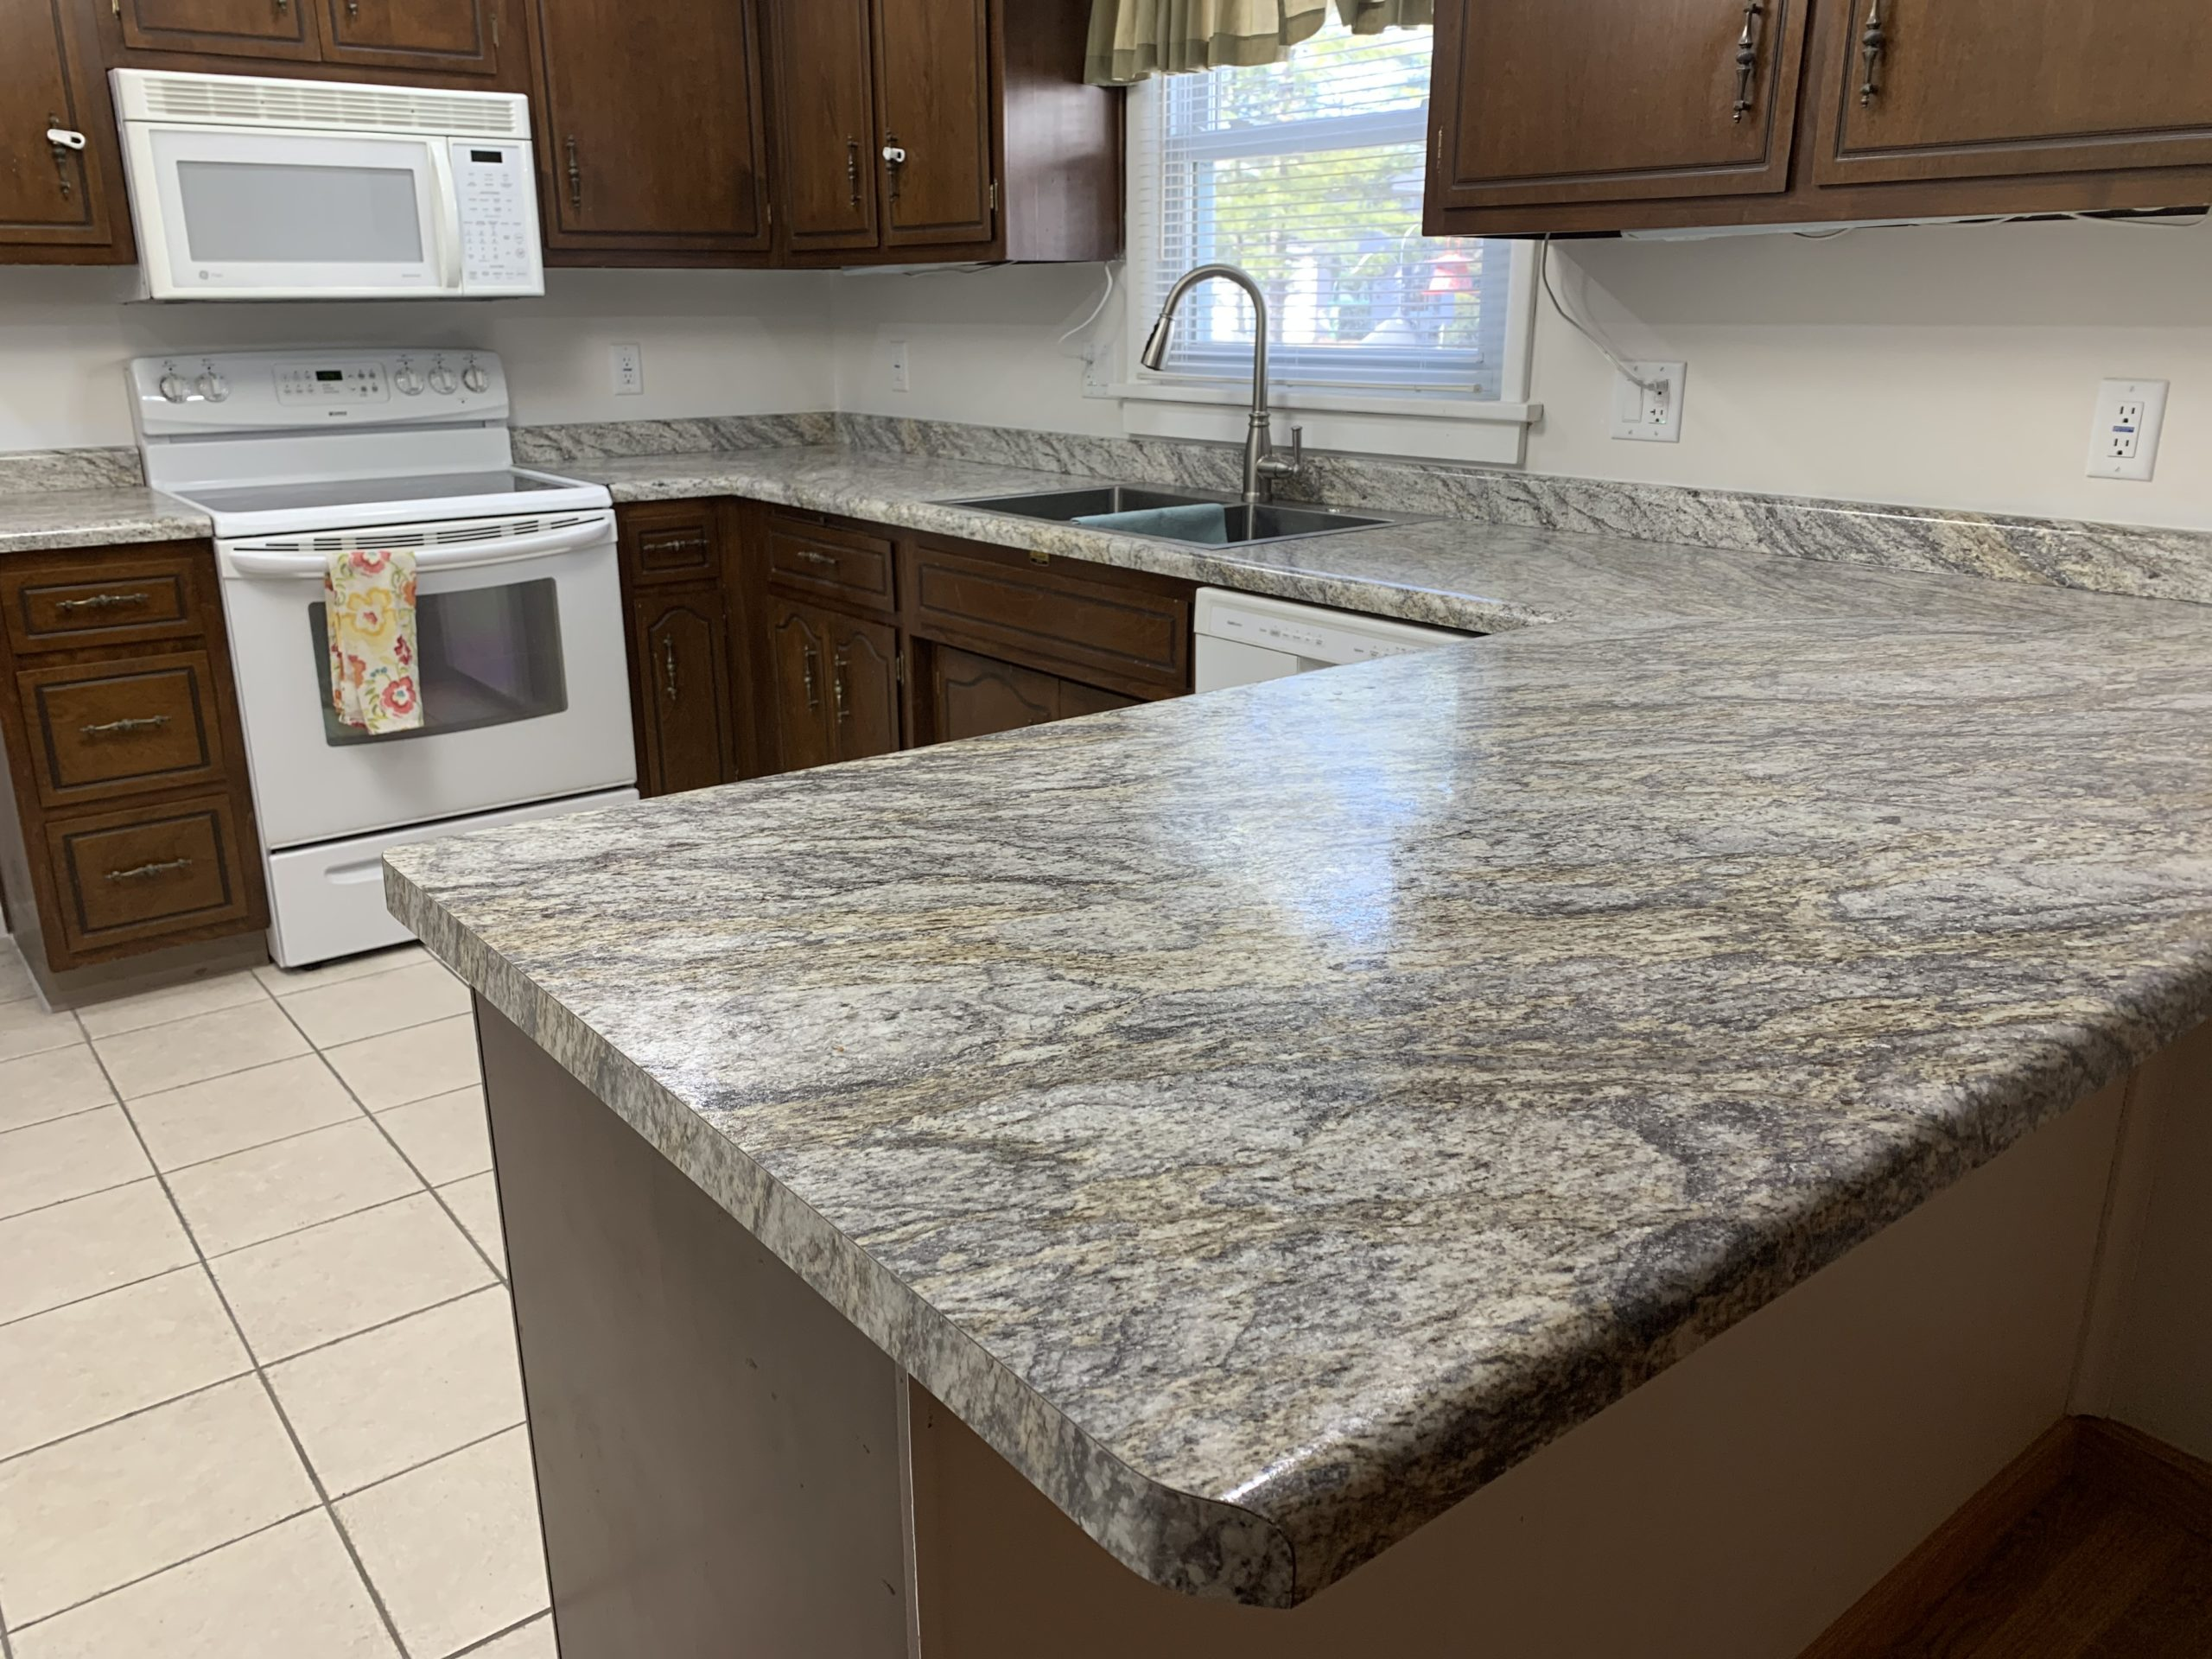 Kitchen Refurbish – High Resolution Counter Top – Bryan, Ohio